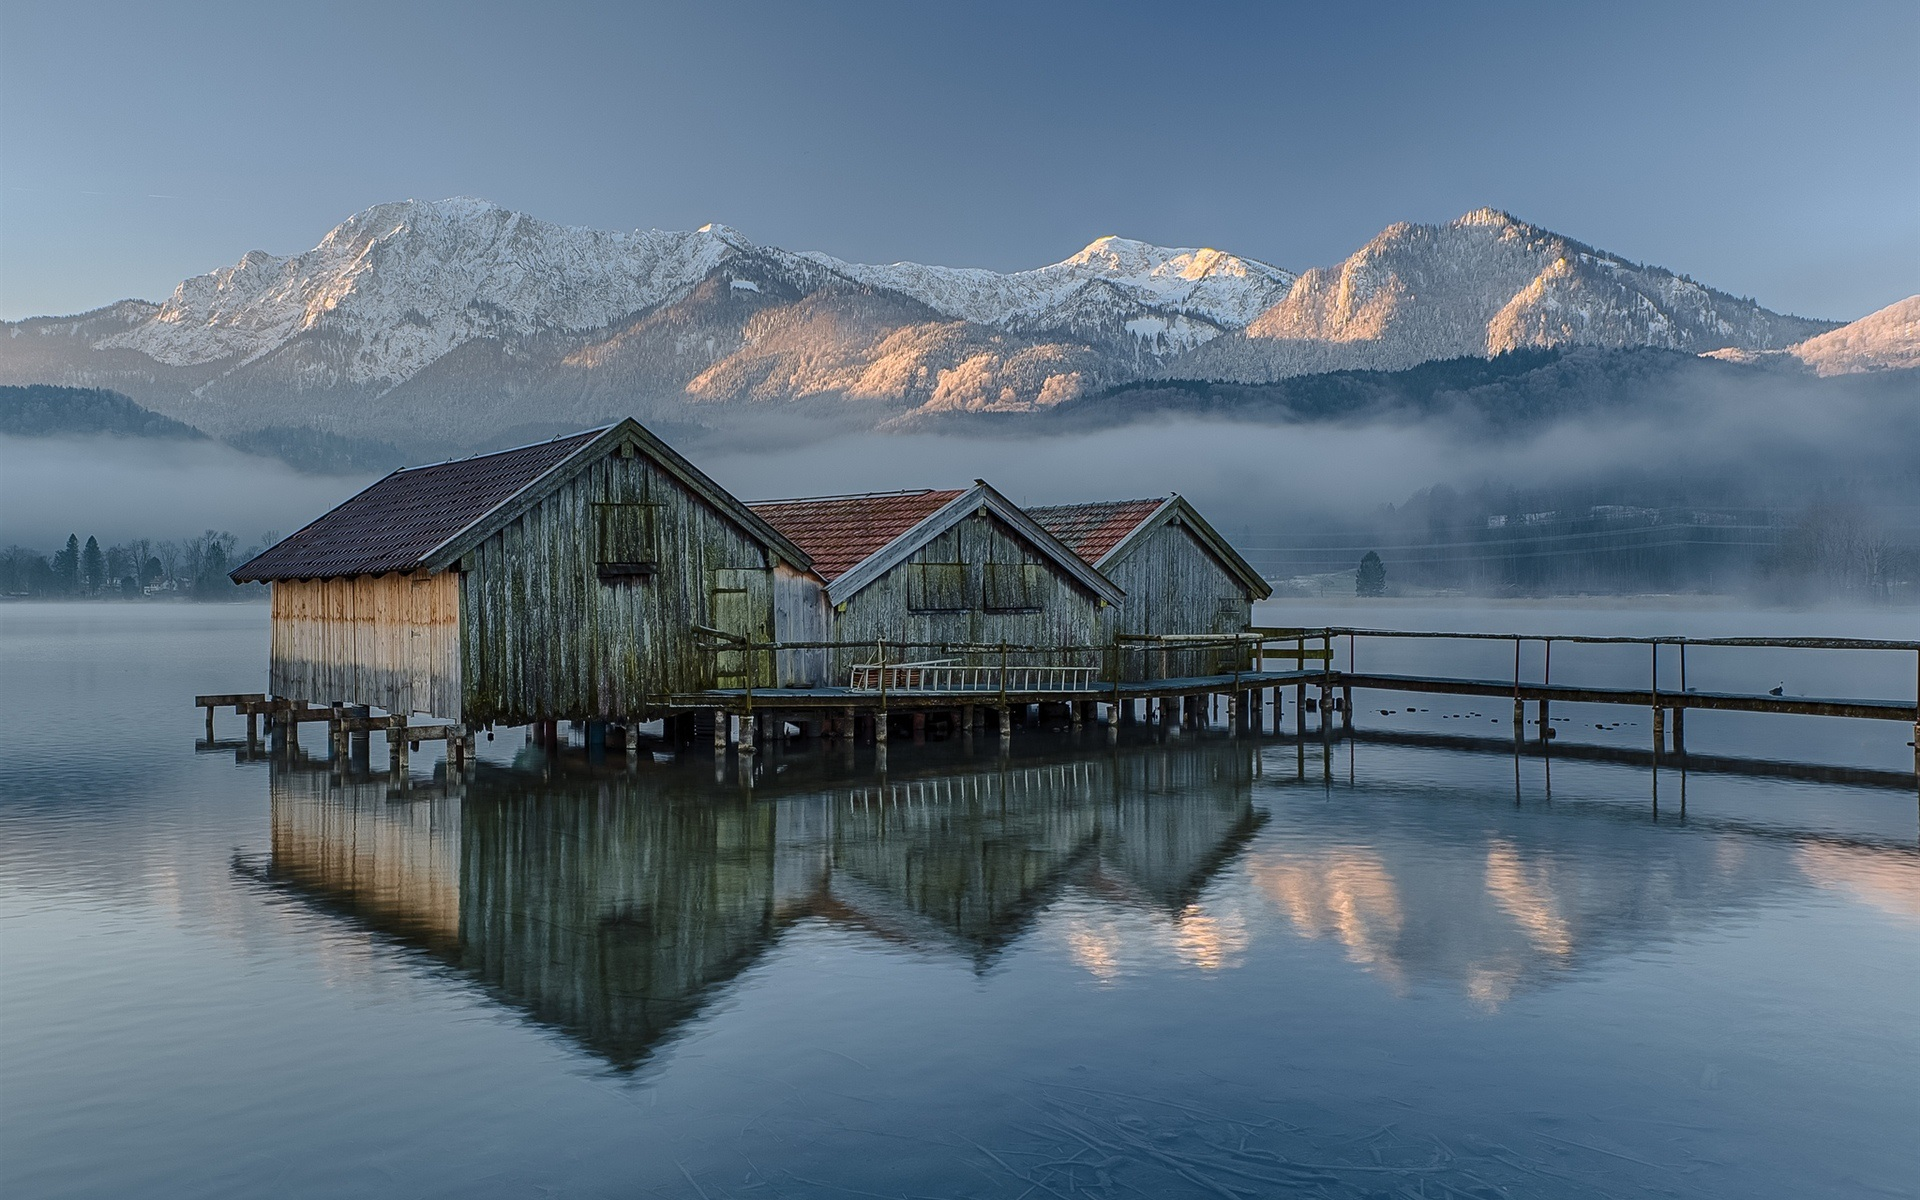 Deutschland bayern holzhaus see berge morgen nebel for House pic hd